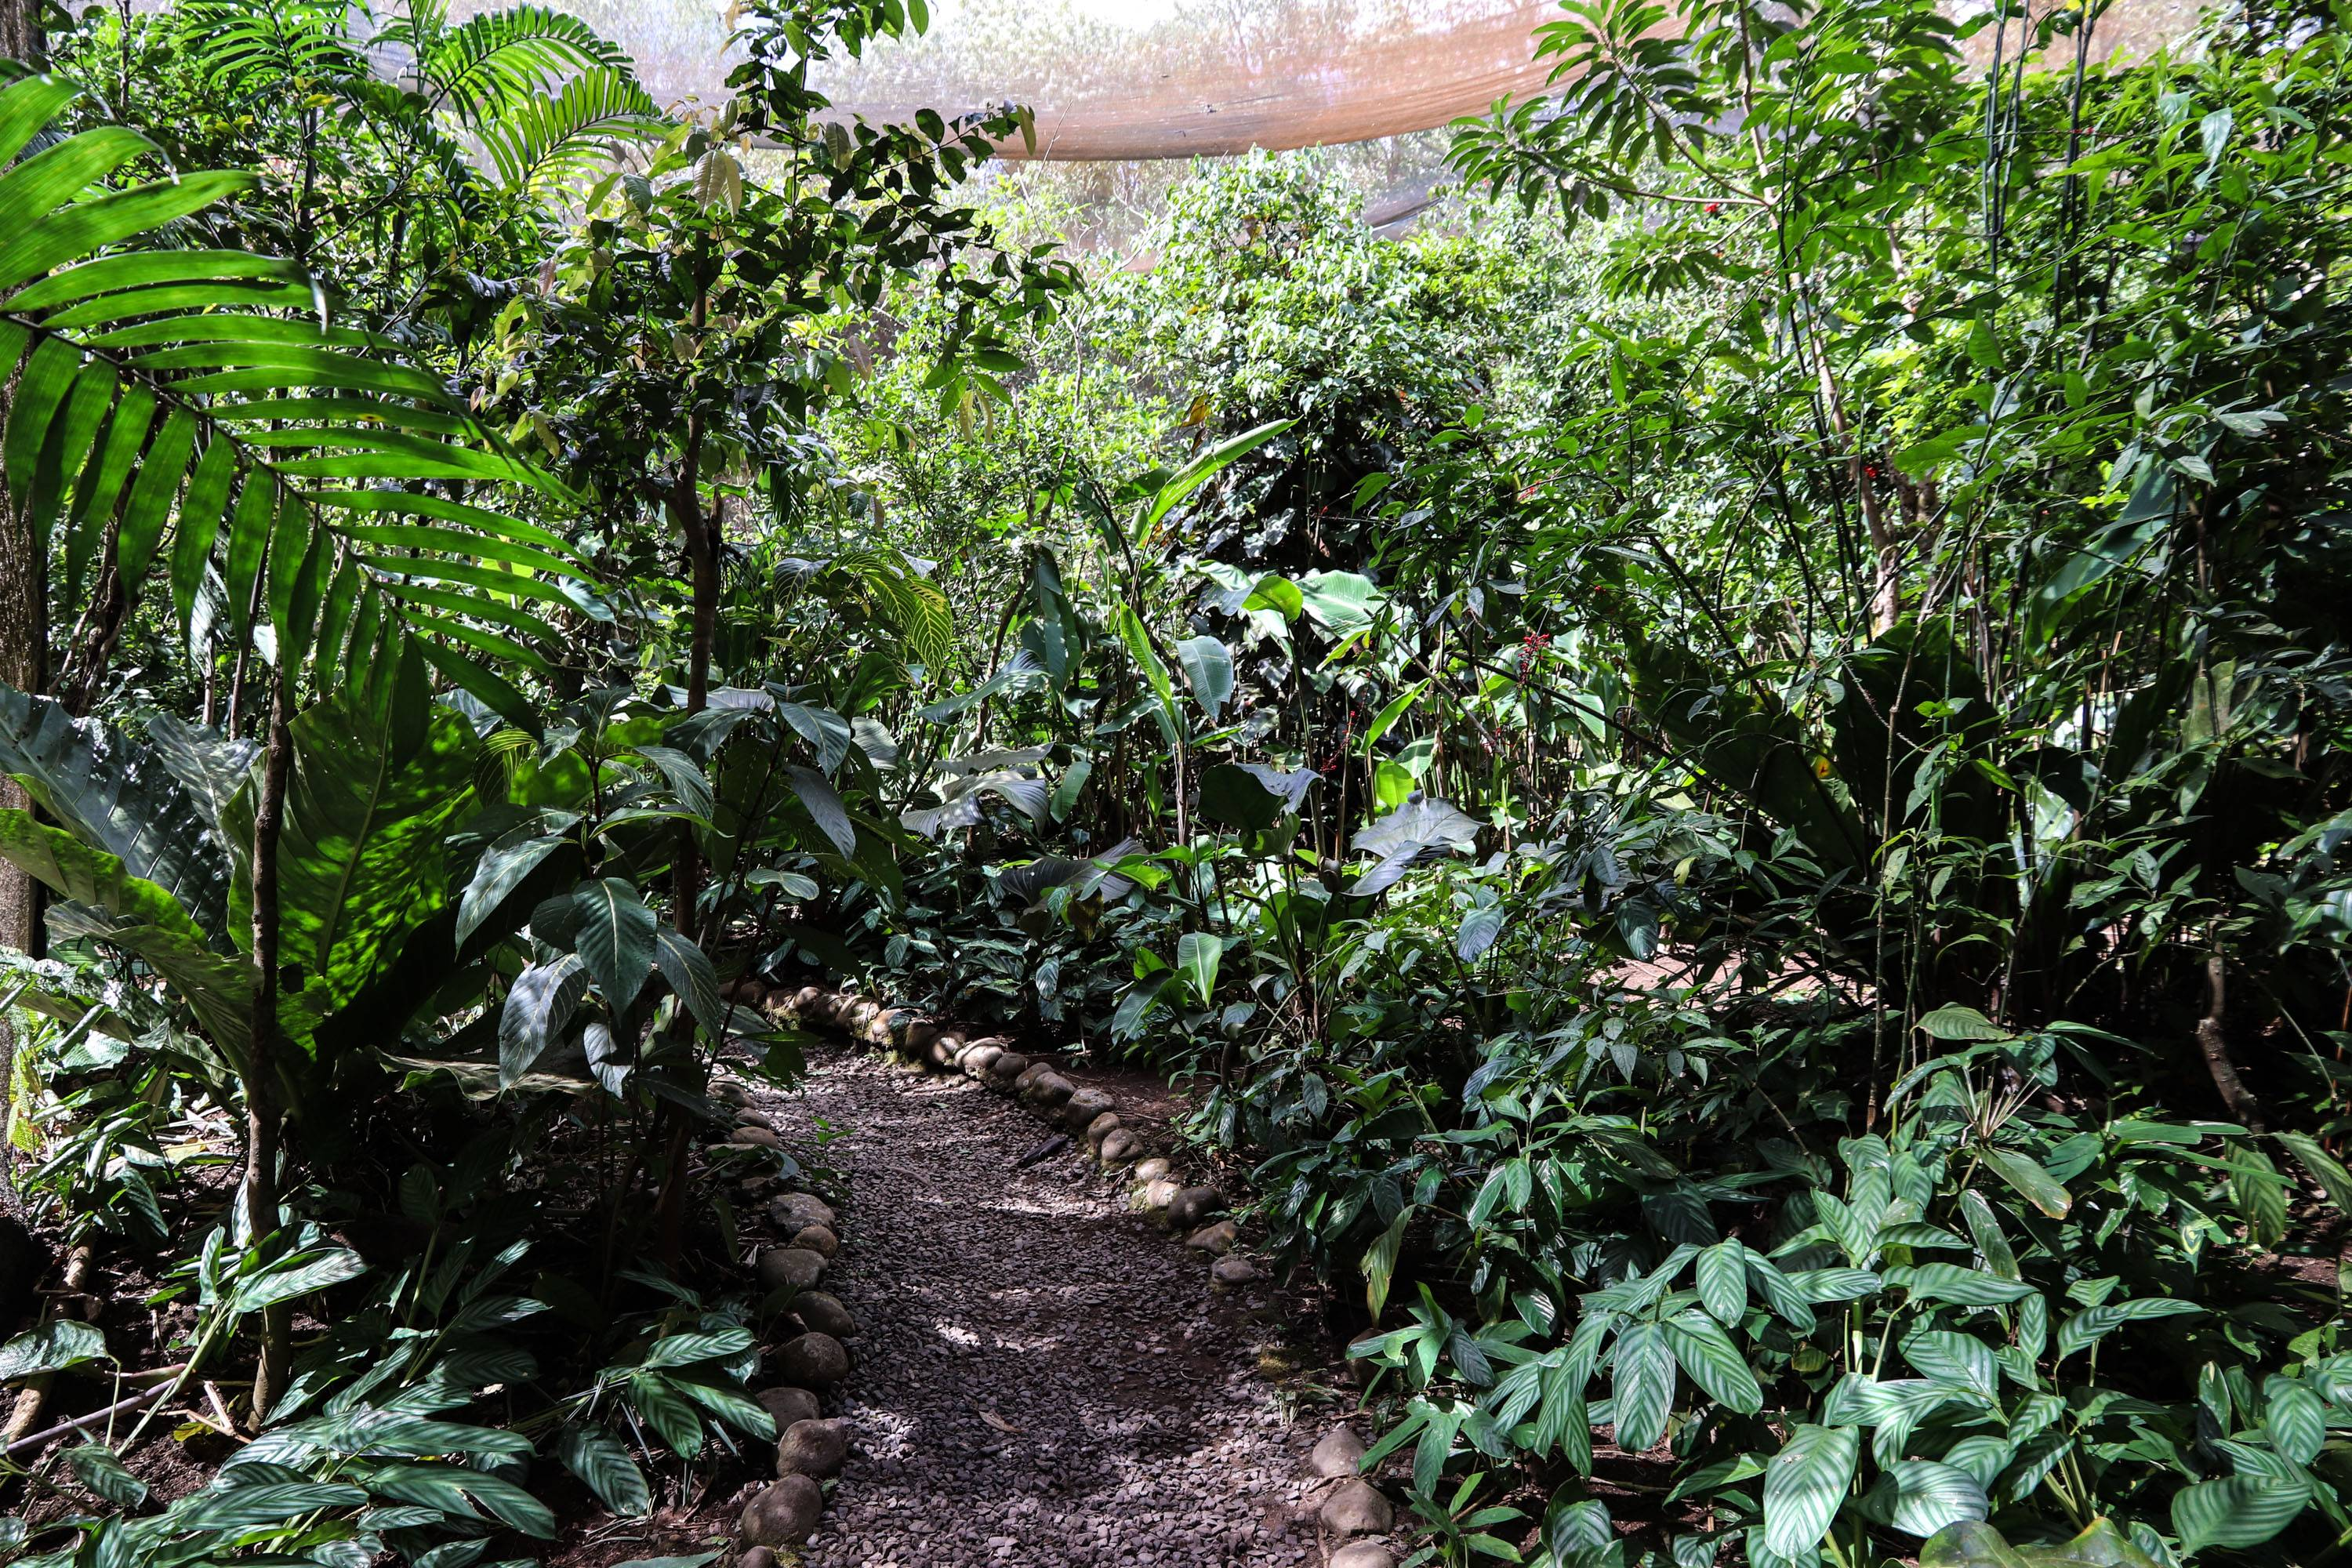 Photo 3: Butterfly garden - Monteverde